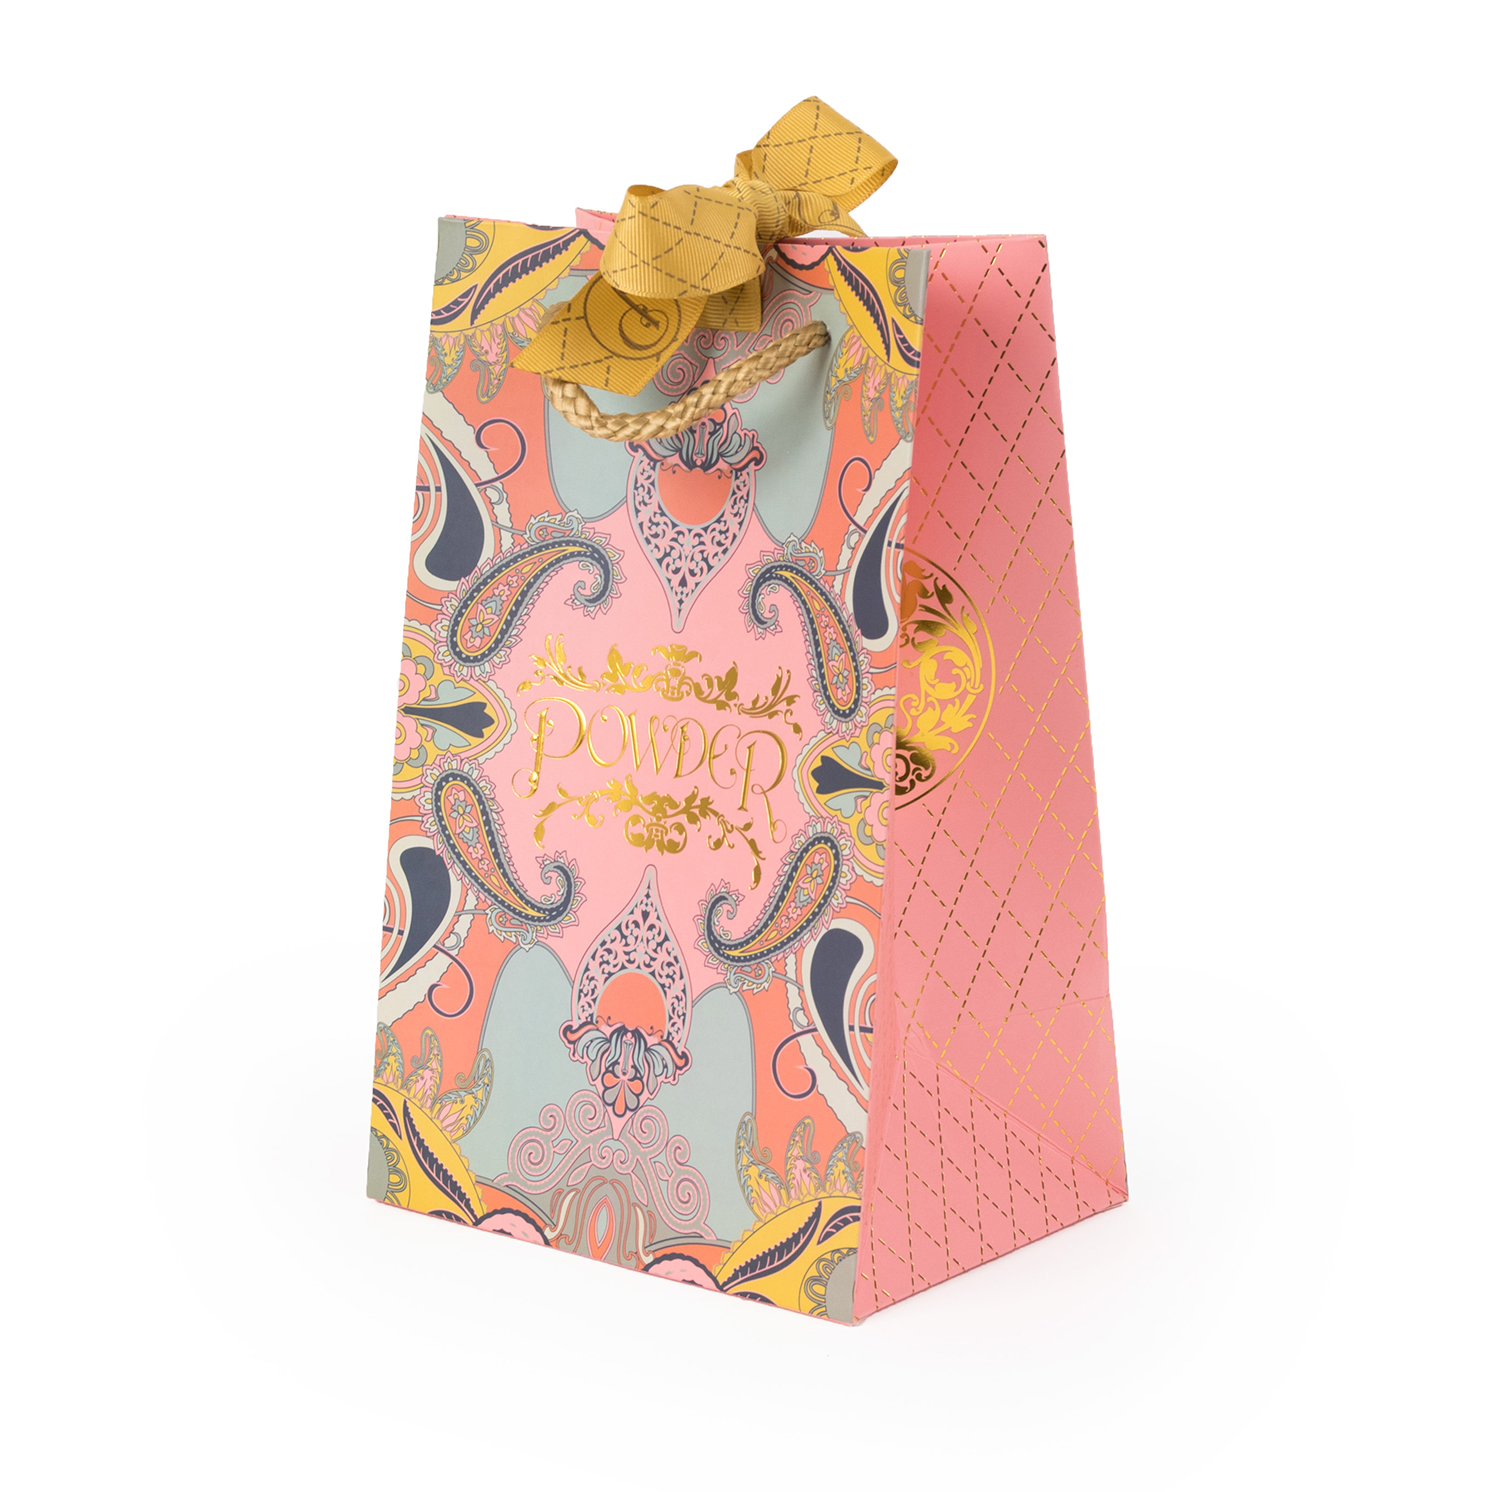 Powder – Cream Retro Meadow Print Scarf with Powder Presentation Gift Bag